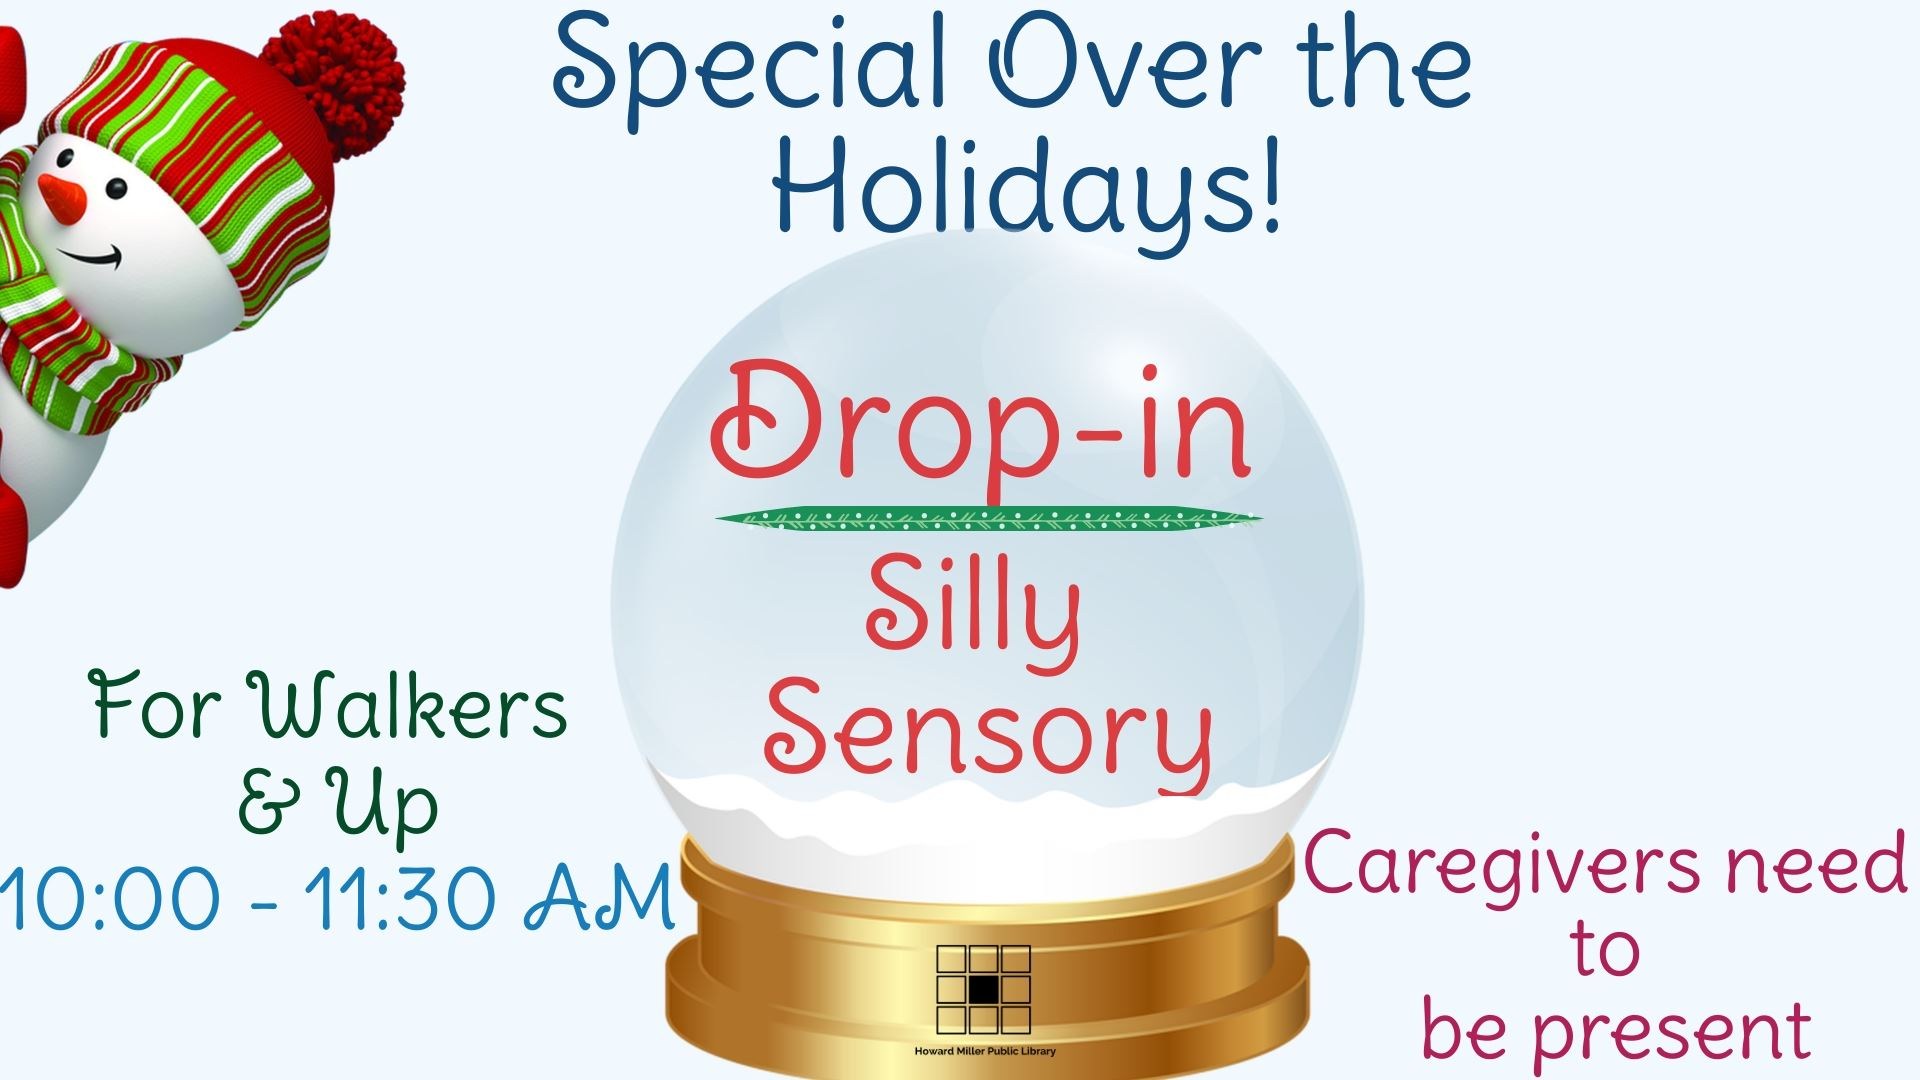 Drop-In Silly Sensory Over the Holidays from 10 AM to 1130 AM Walkers and up